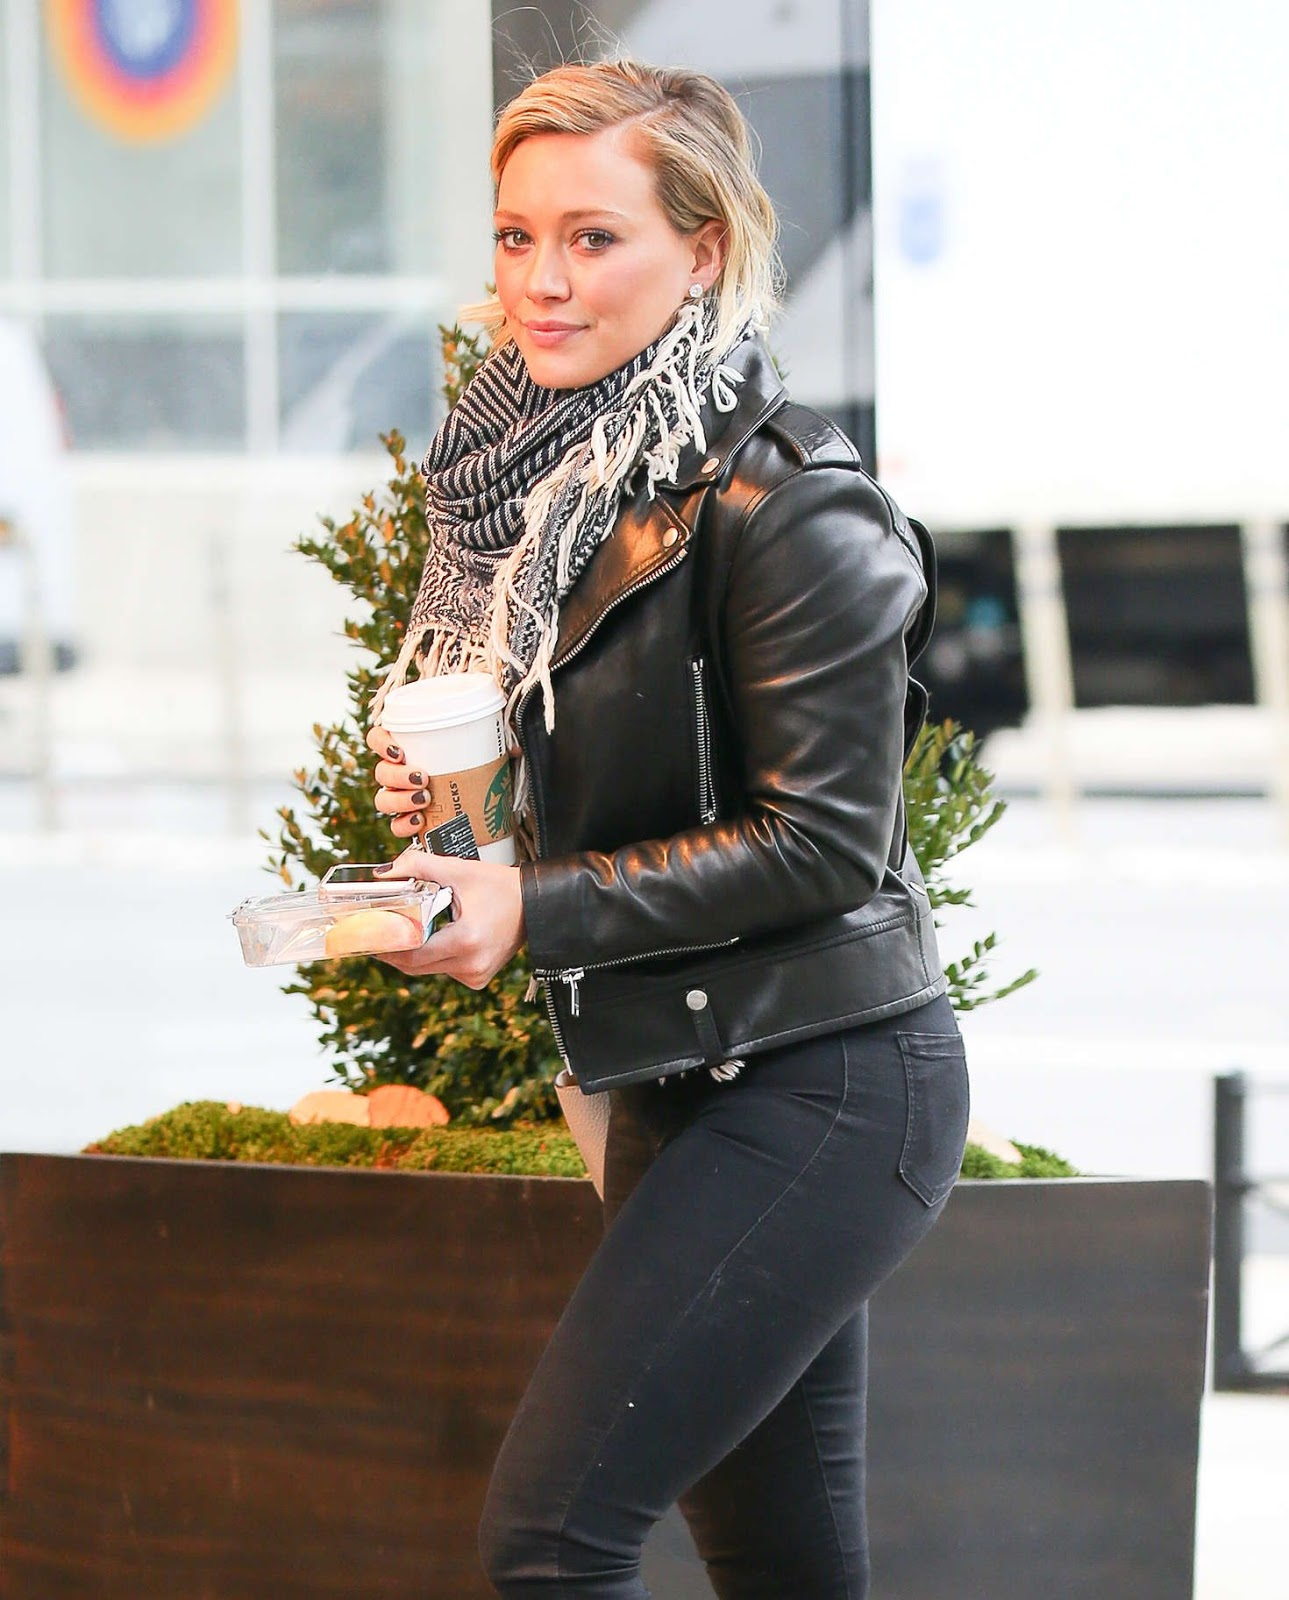 Hilary Duff in Black Jeans - Photo Hilary Duff 2016